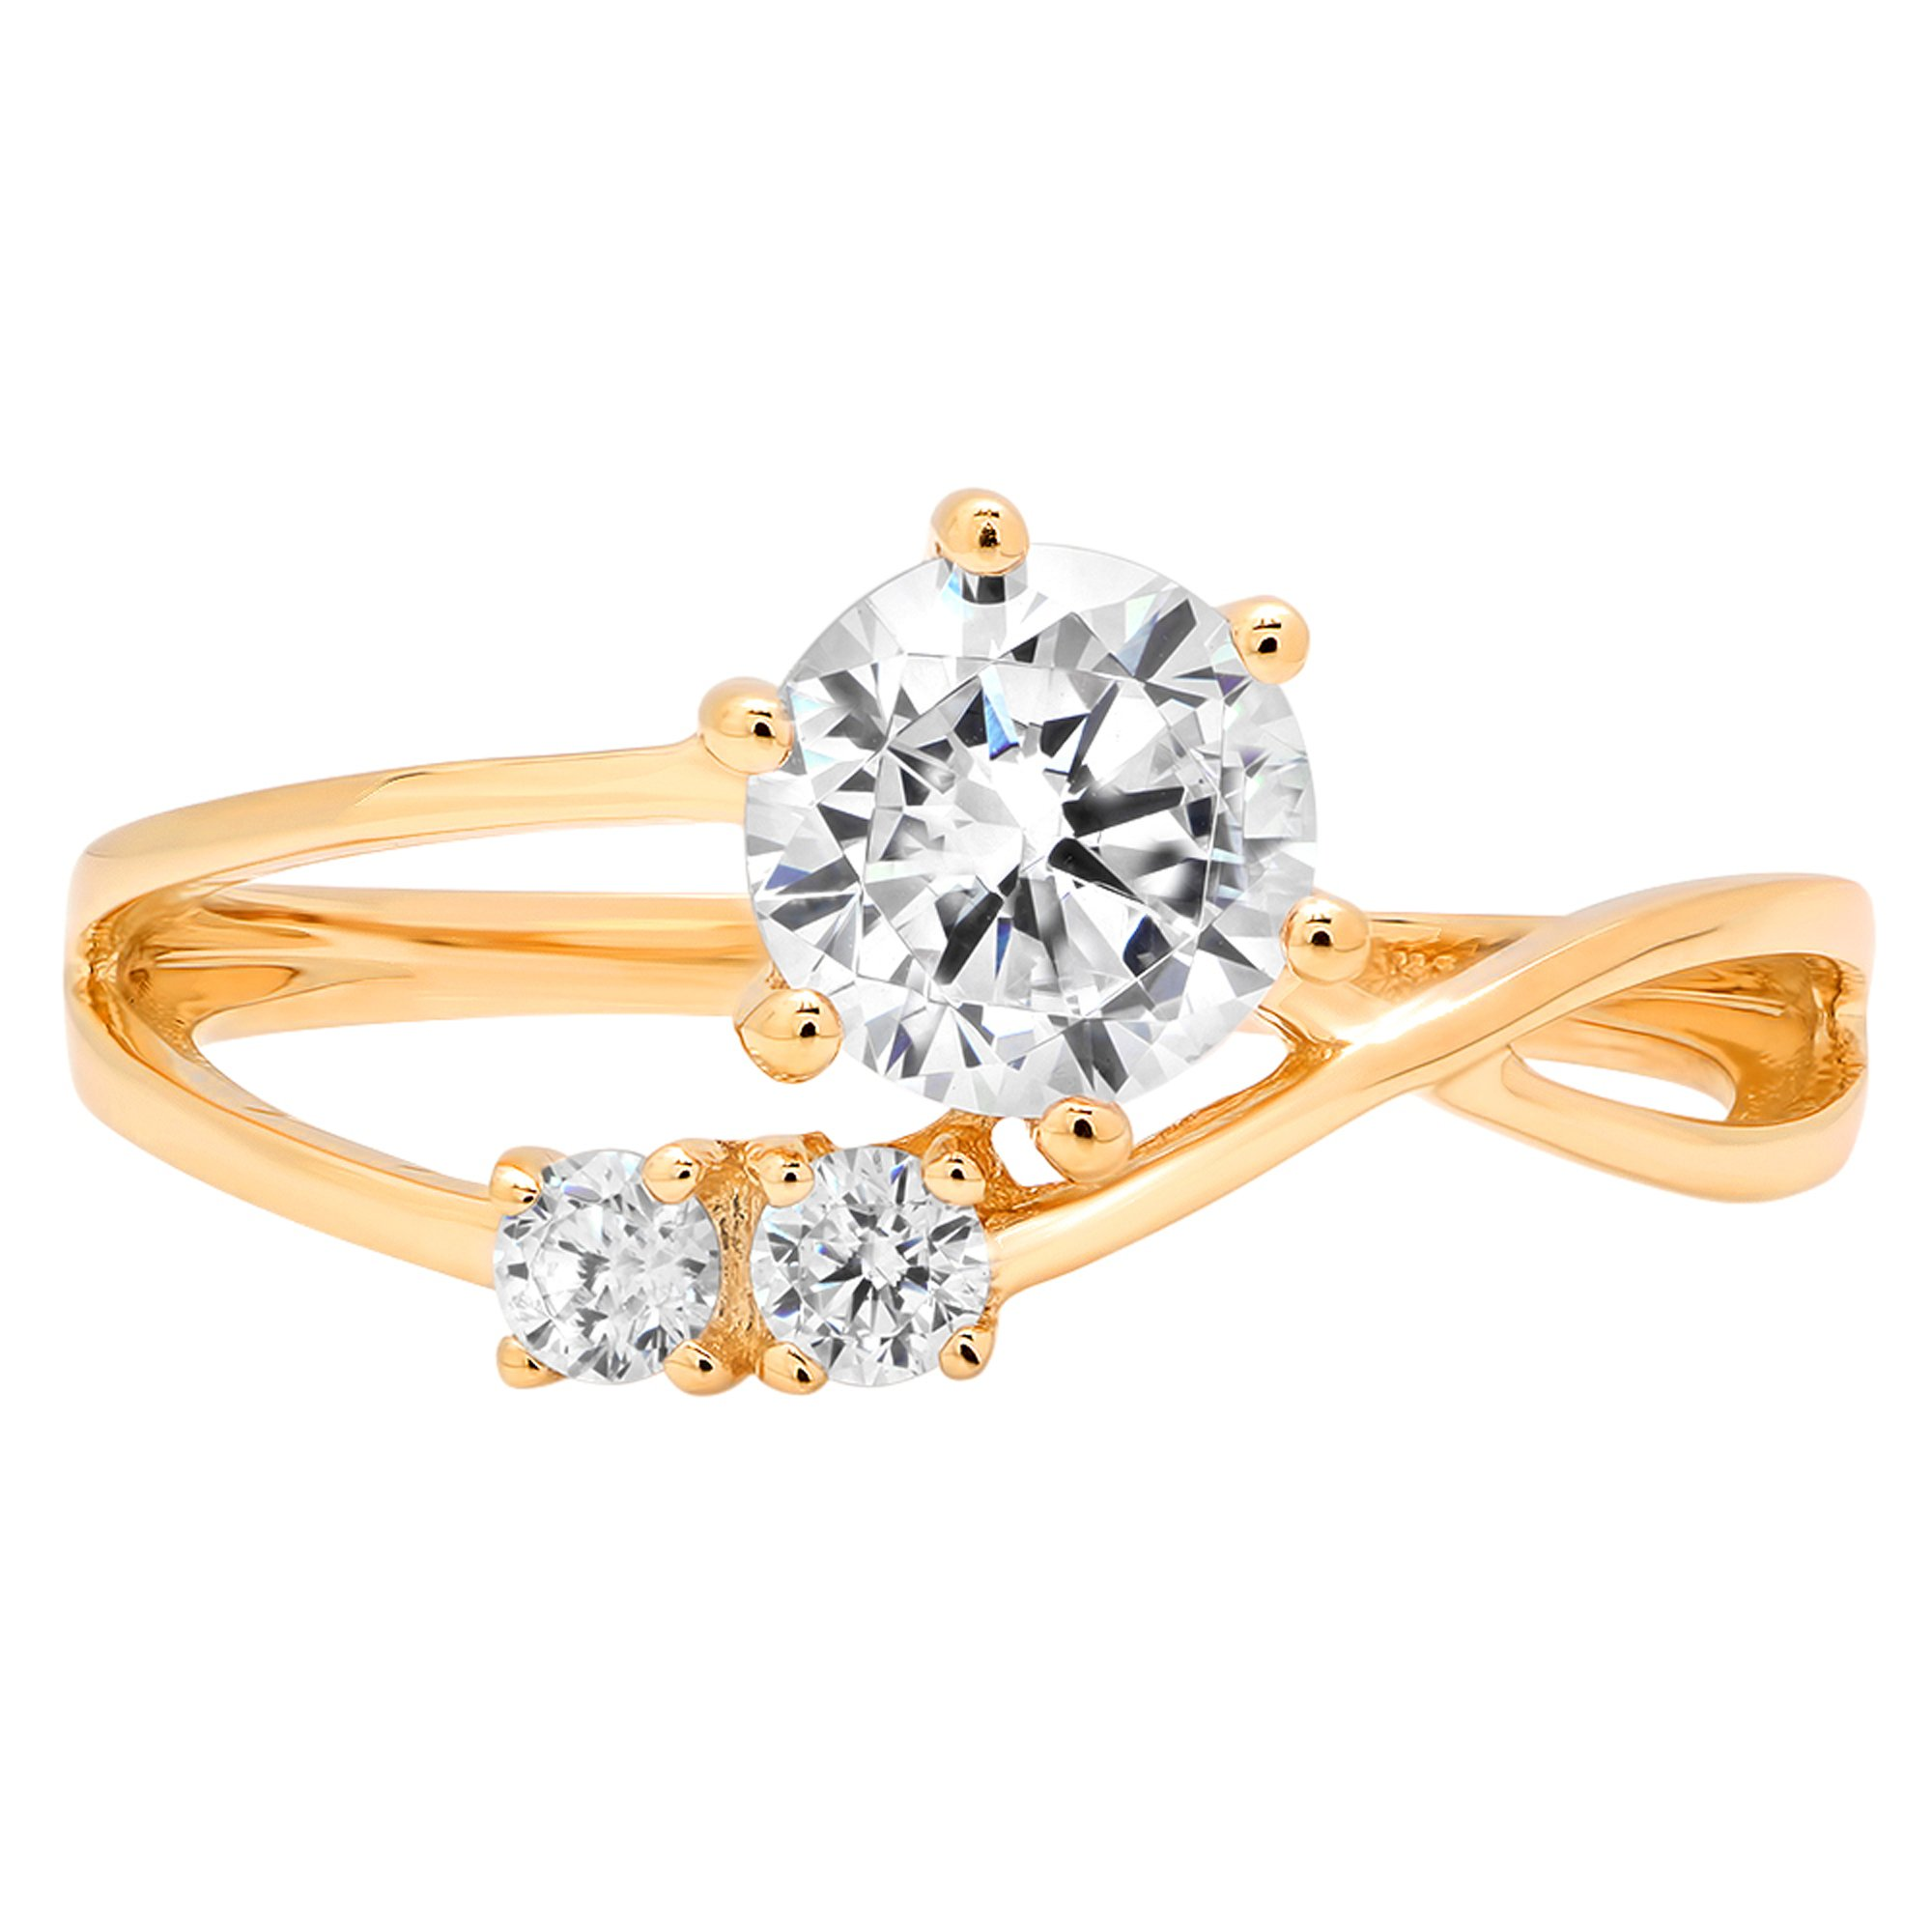 Clara Pucci 1.05 ct Three Stone Round Brilliant Cut Engagement Bridal Wedding Band Ring in 14K Yellow Gold, Size 4.25